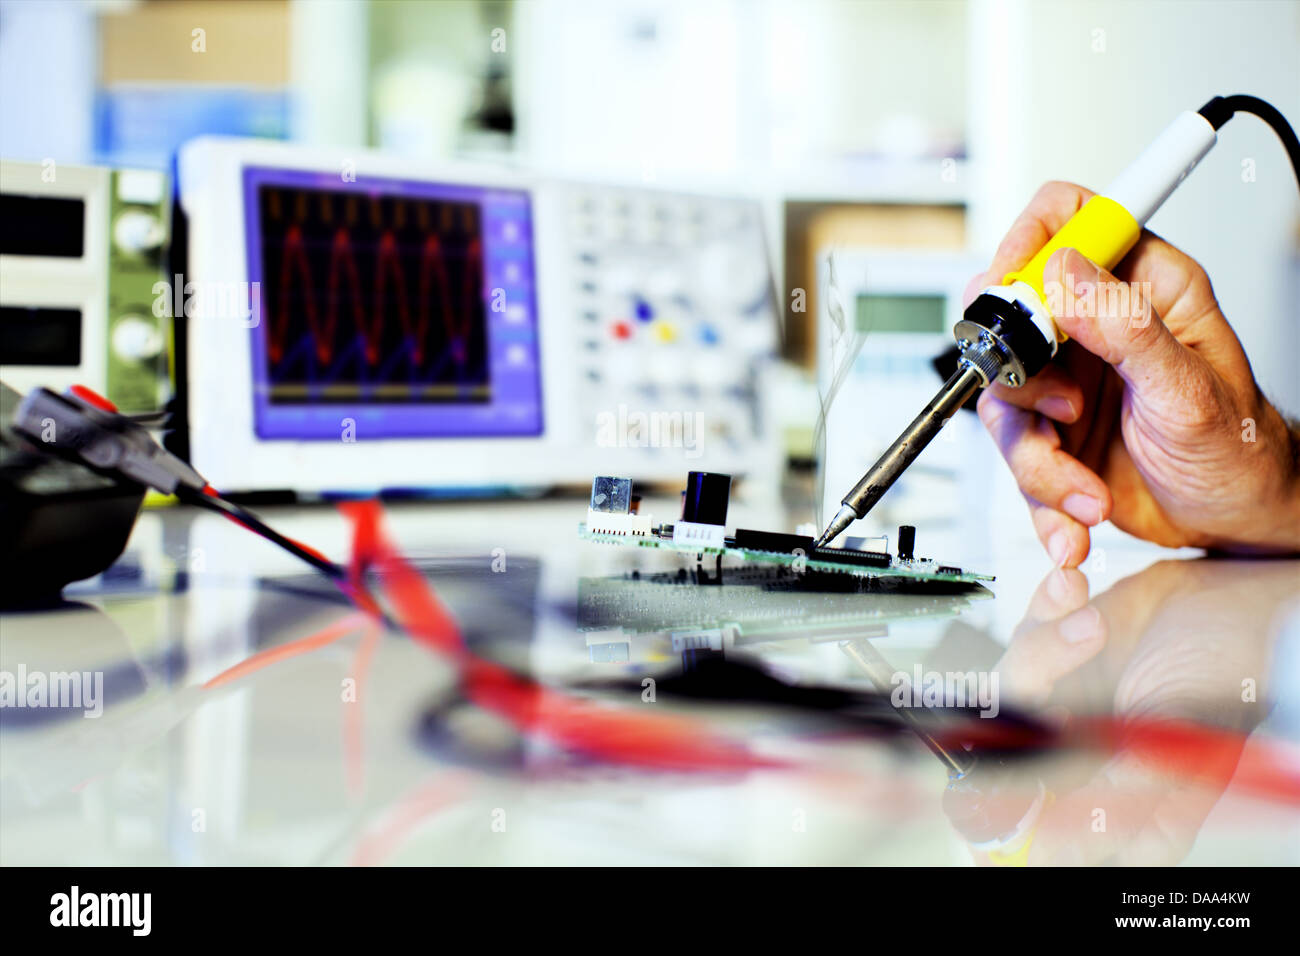 Circuit Board Parts Stock Photos Images Soldering Electronic On A Printed Image